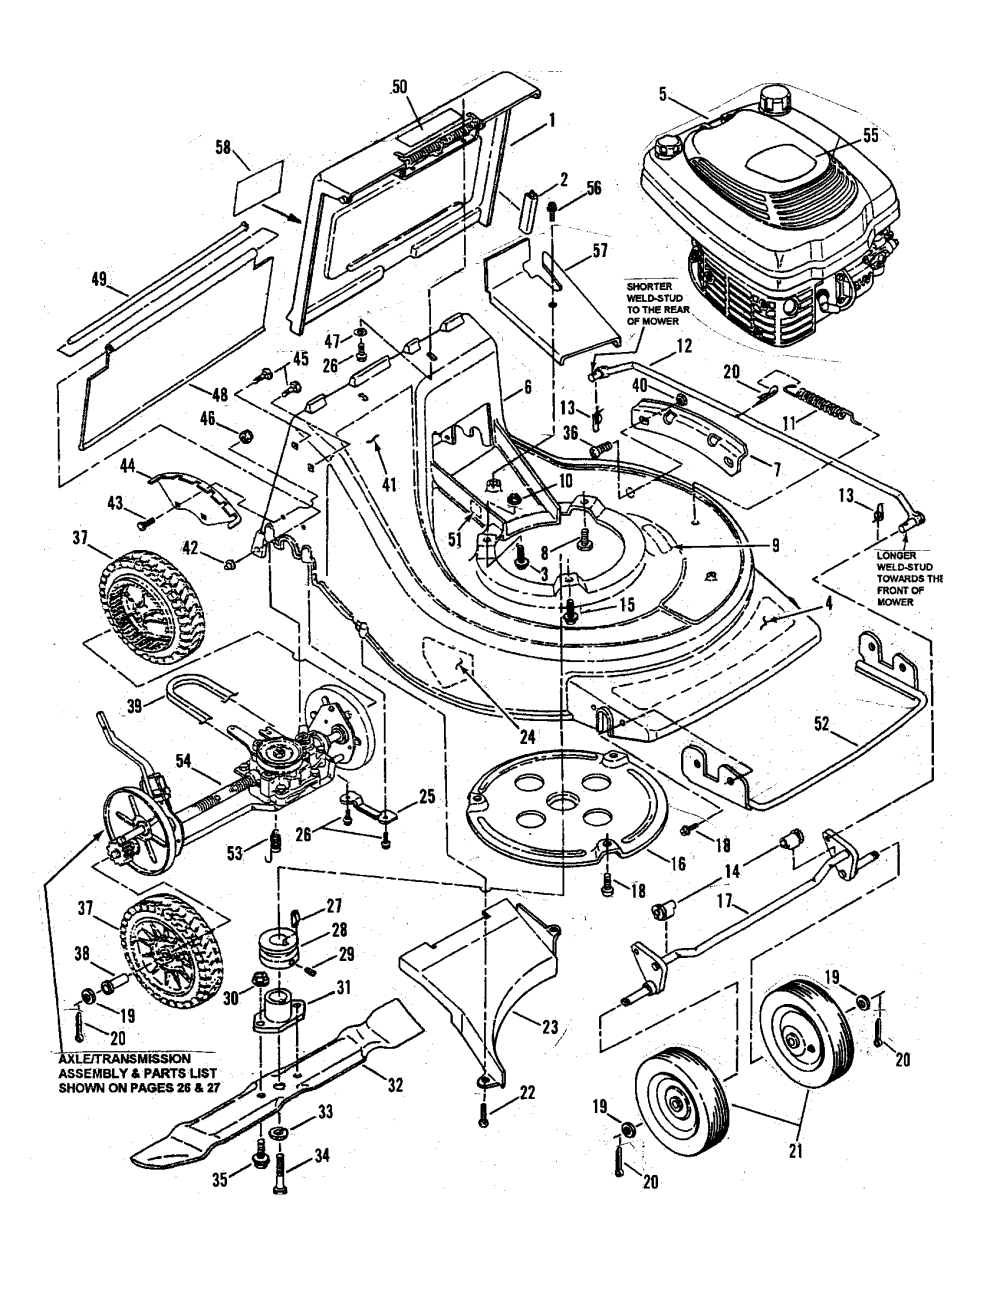 medium resolution of snapper mower schematics wiring diagram compilation snapper mower parts briggs diagram and parts list for snapper